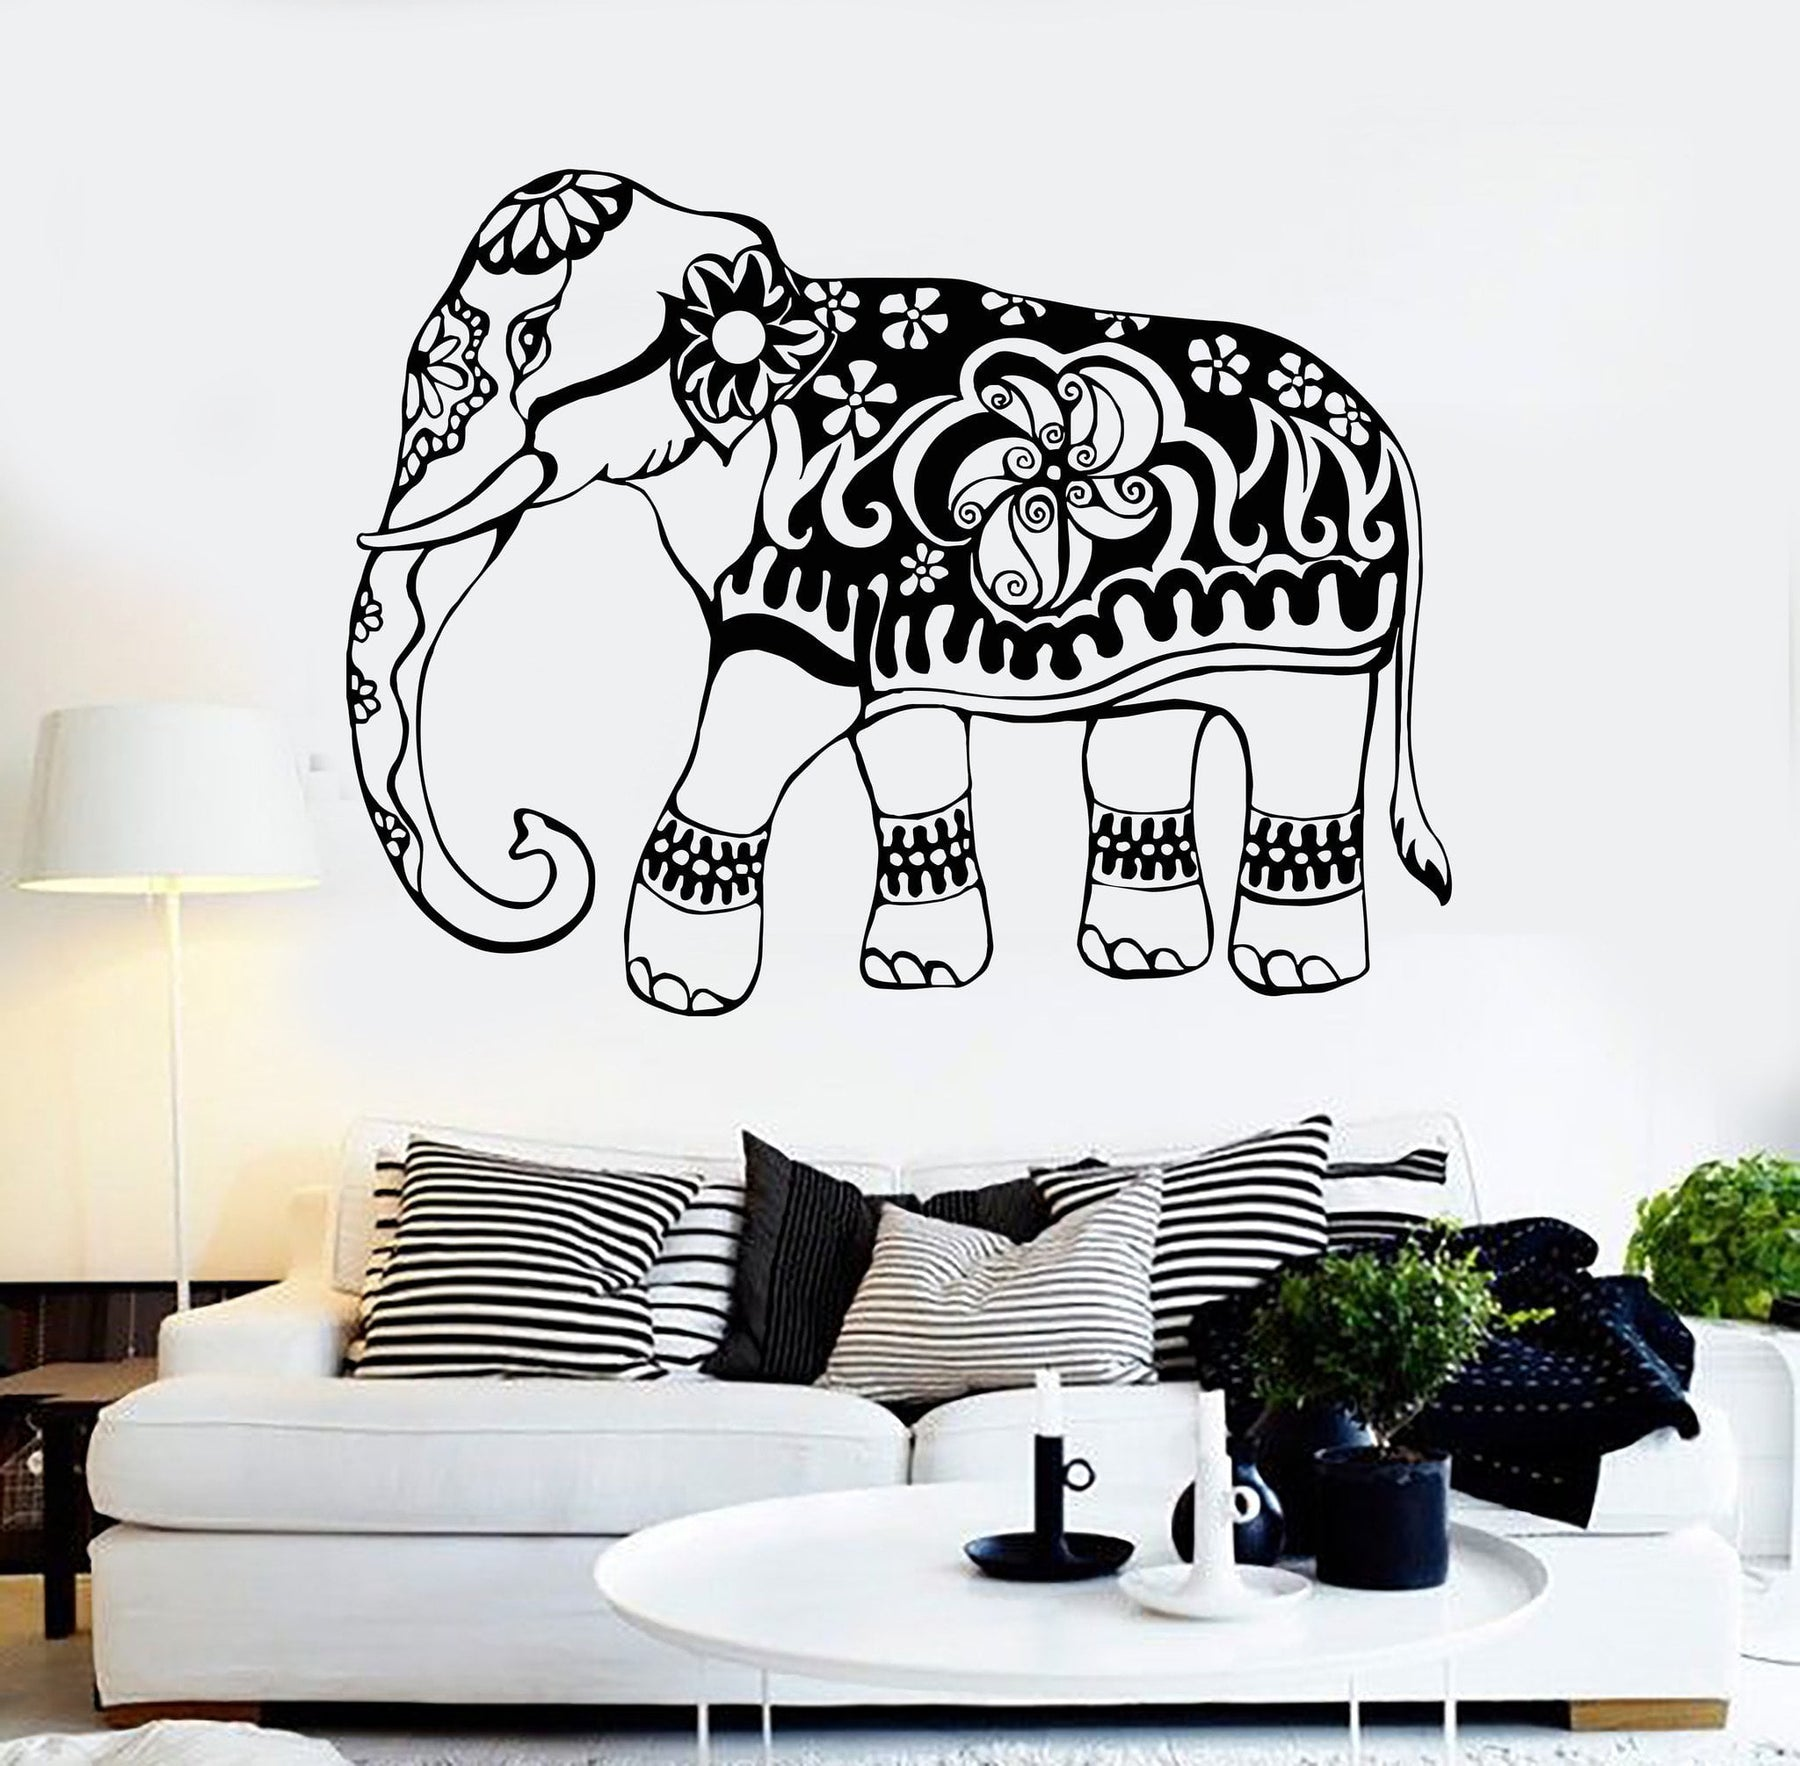 Vinyl Wall Decal India Elephant Animal Ornament Stickers Mural Unique Gift 150ig